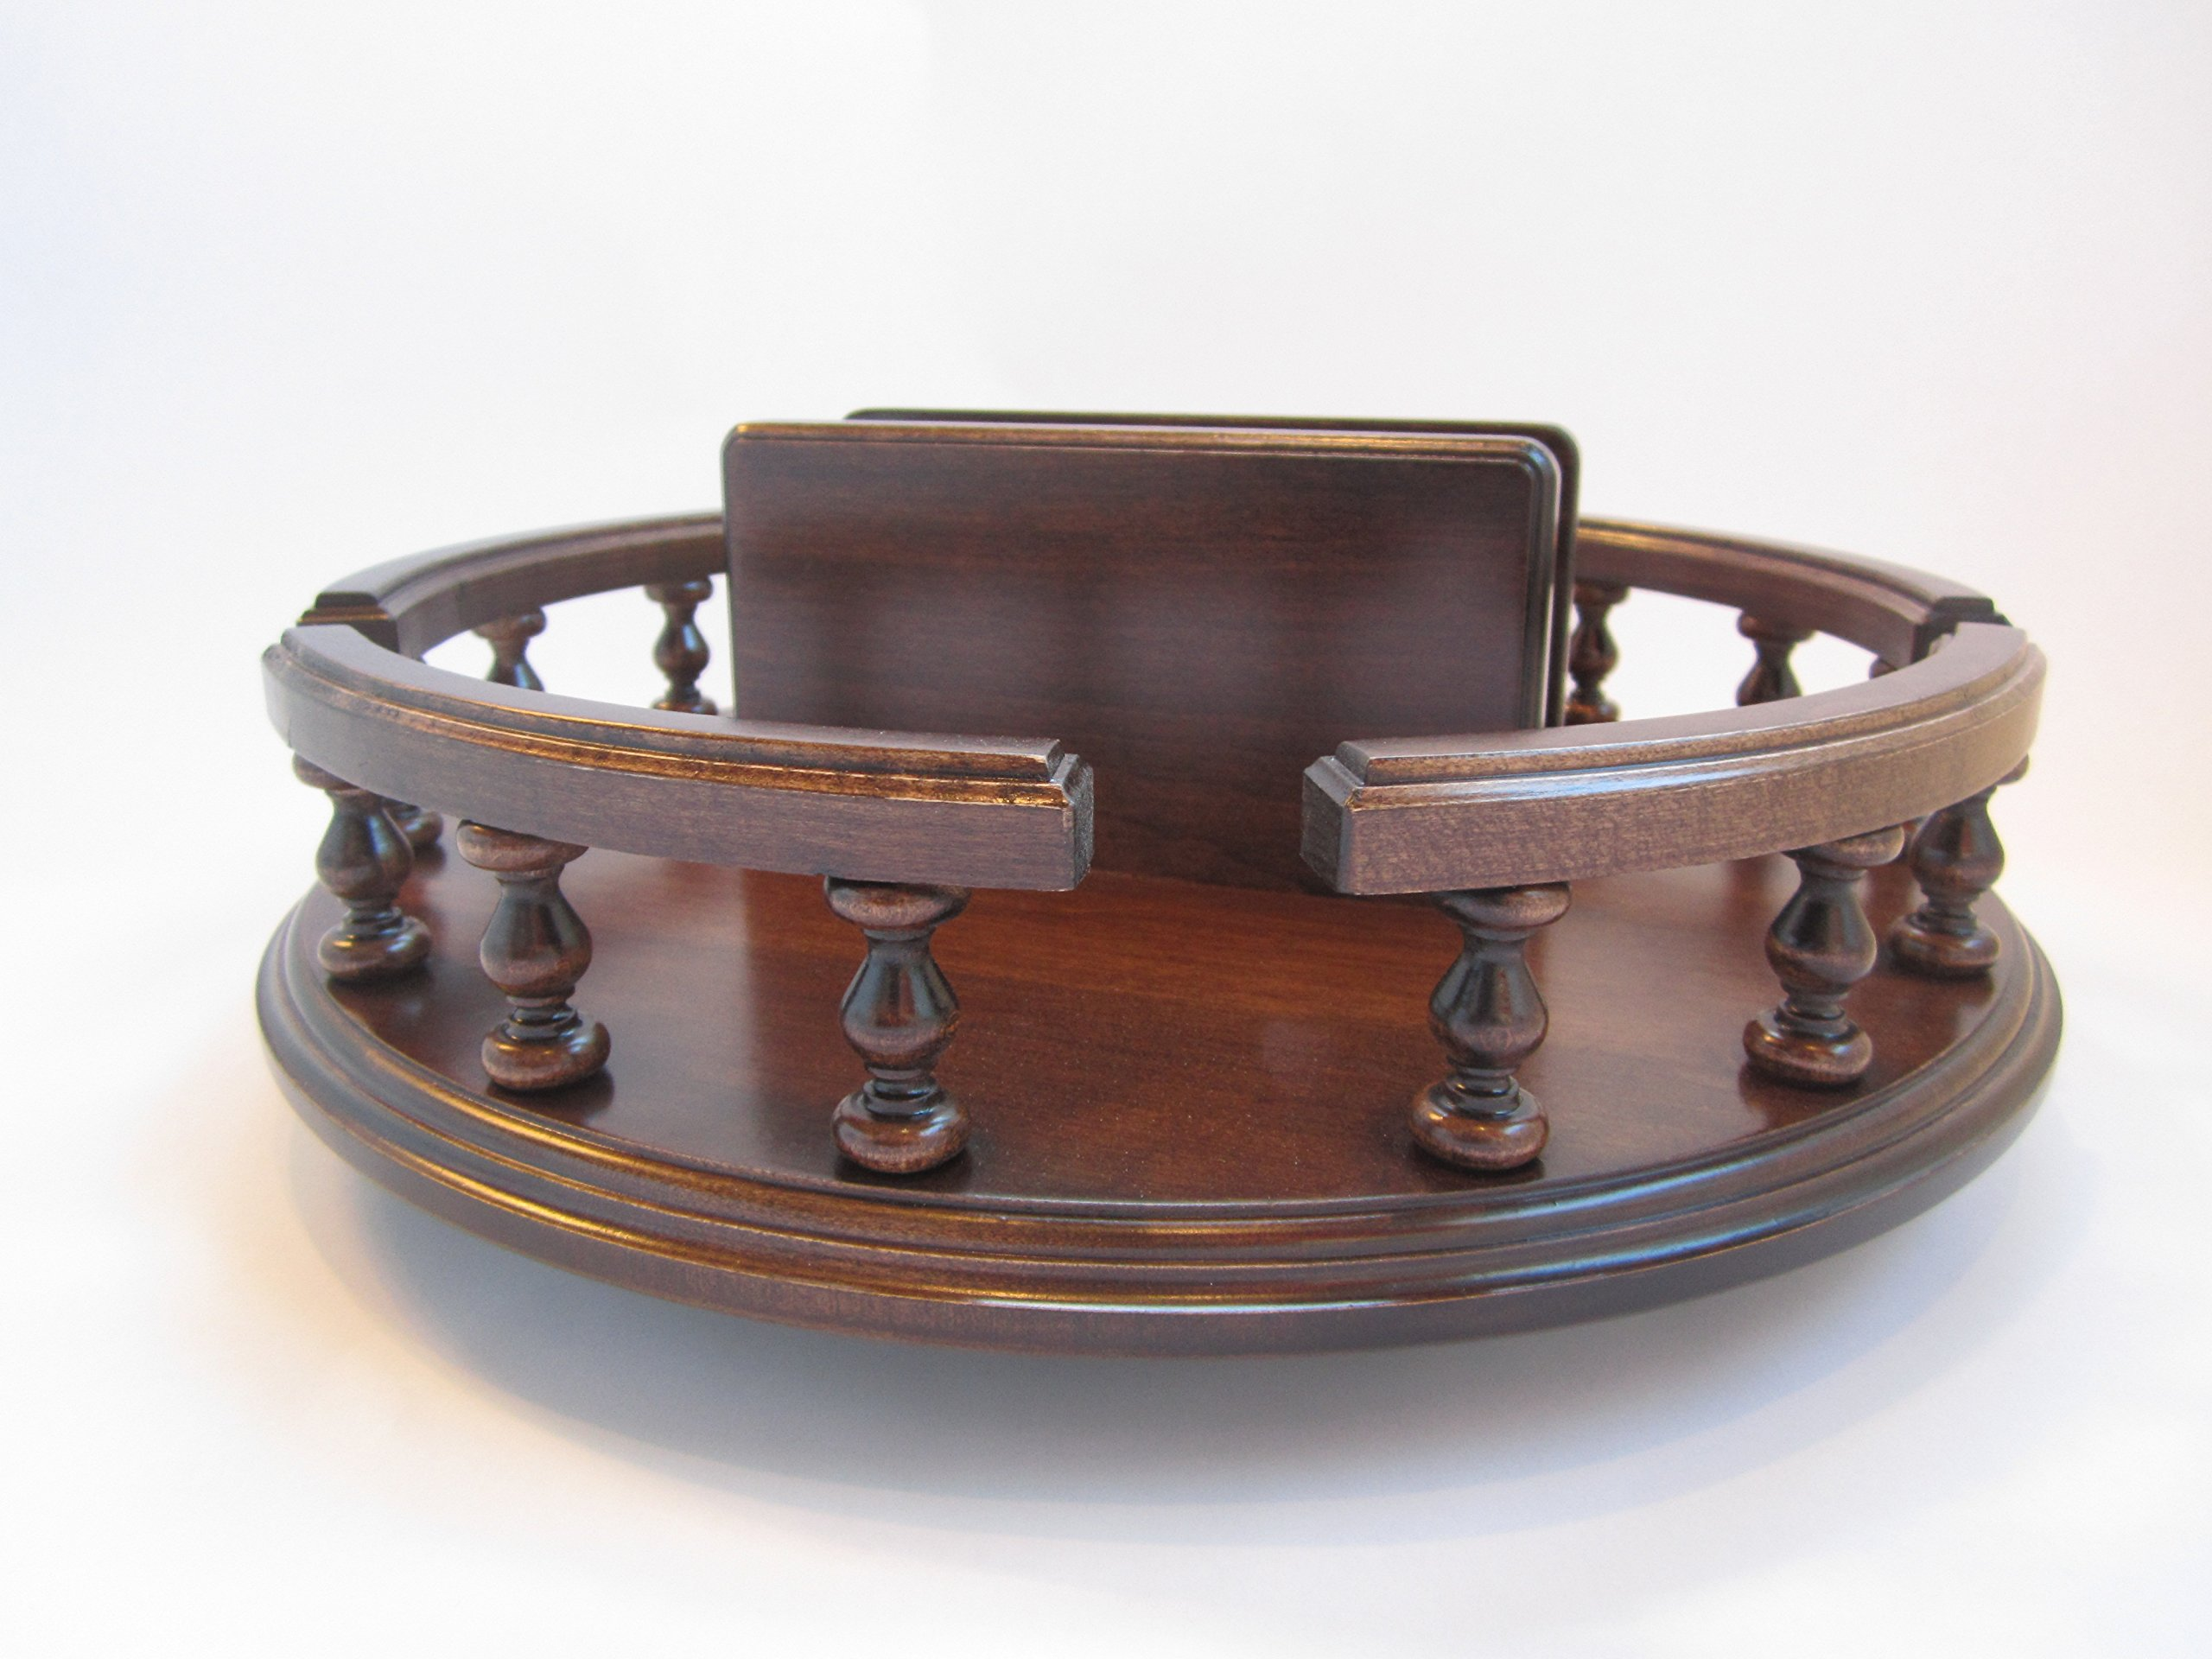 Amish Handcrafted 14'' Lazy Susan with Napkin Holder Turn Table Revolving Solid Wood Brown Maple Table Centerpiece Rotate Condiment Server Swivel